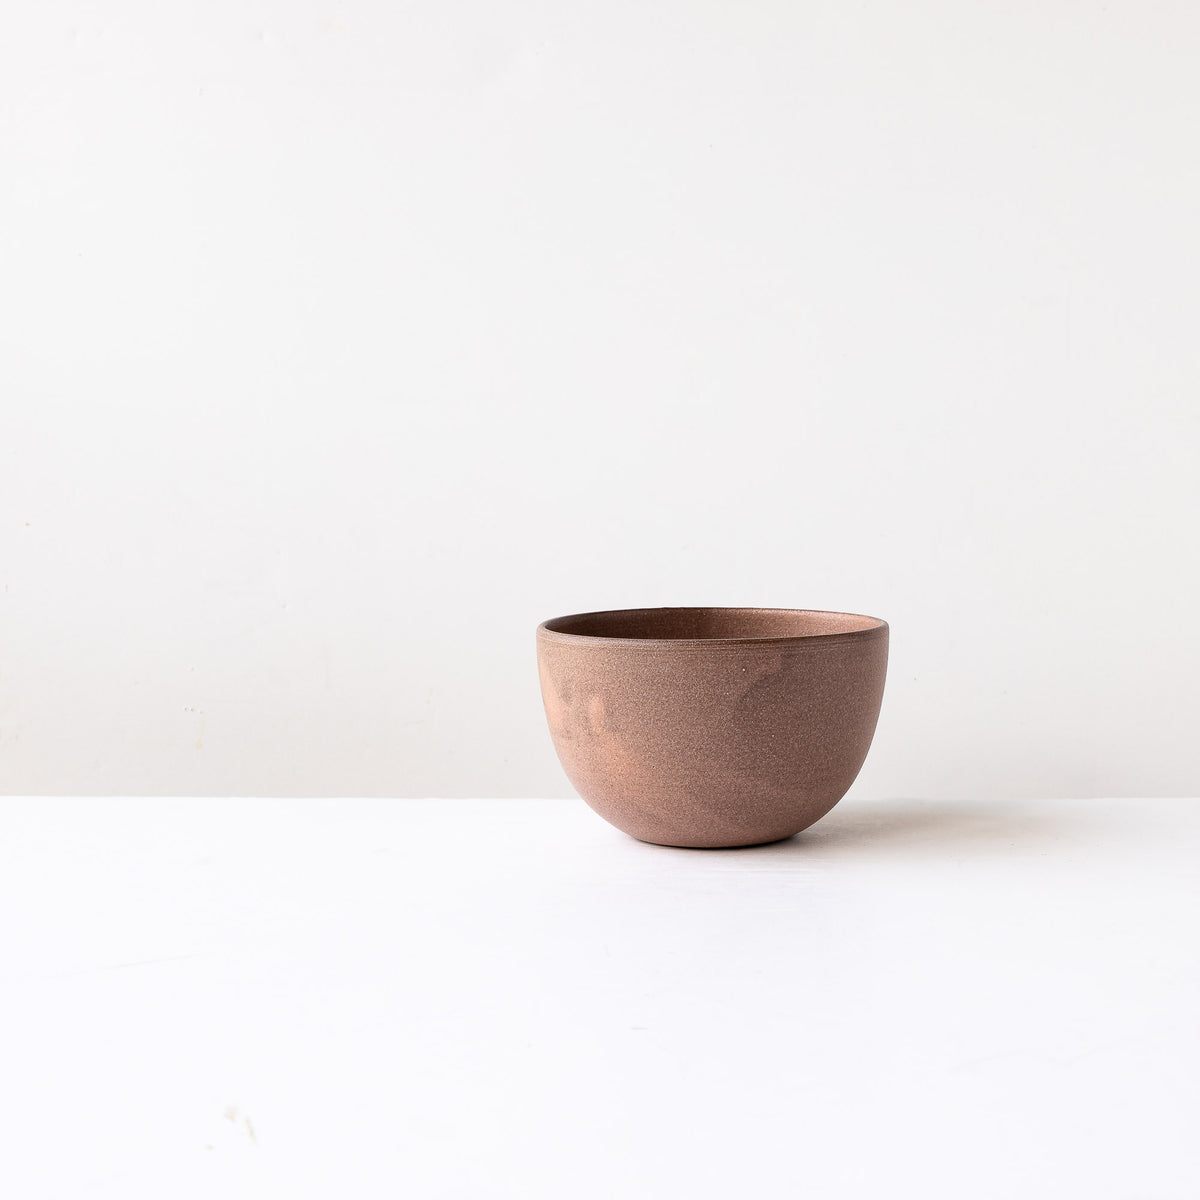 Old Rose Handmade Stoneware Breakfast Bowl - Sold by Chic & Basta